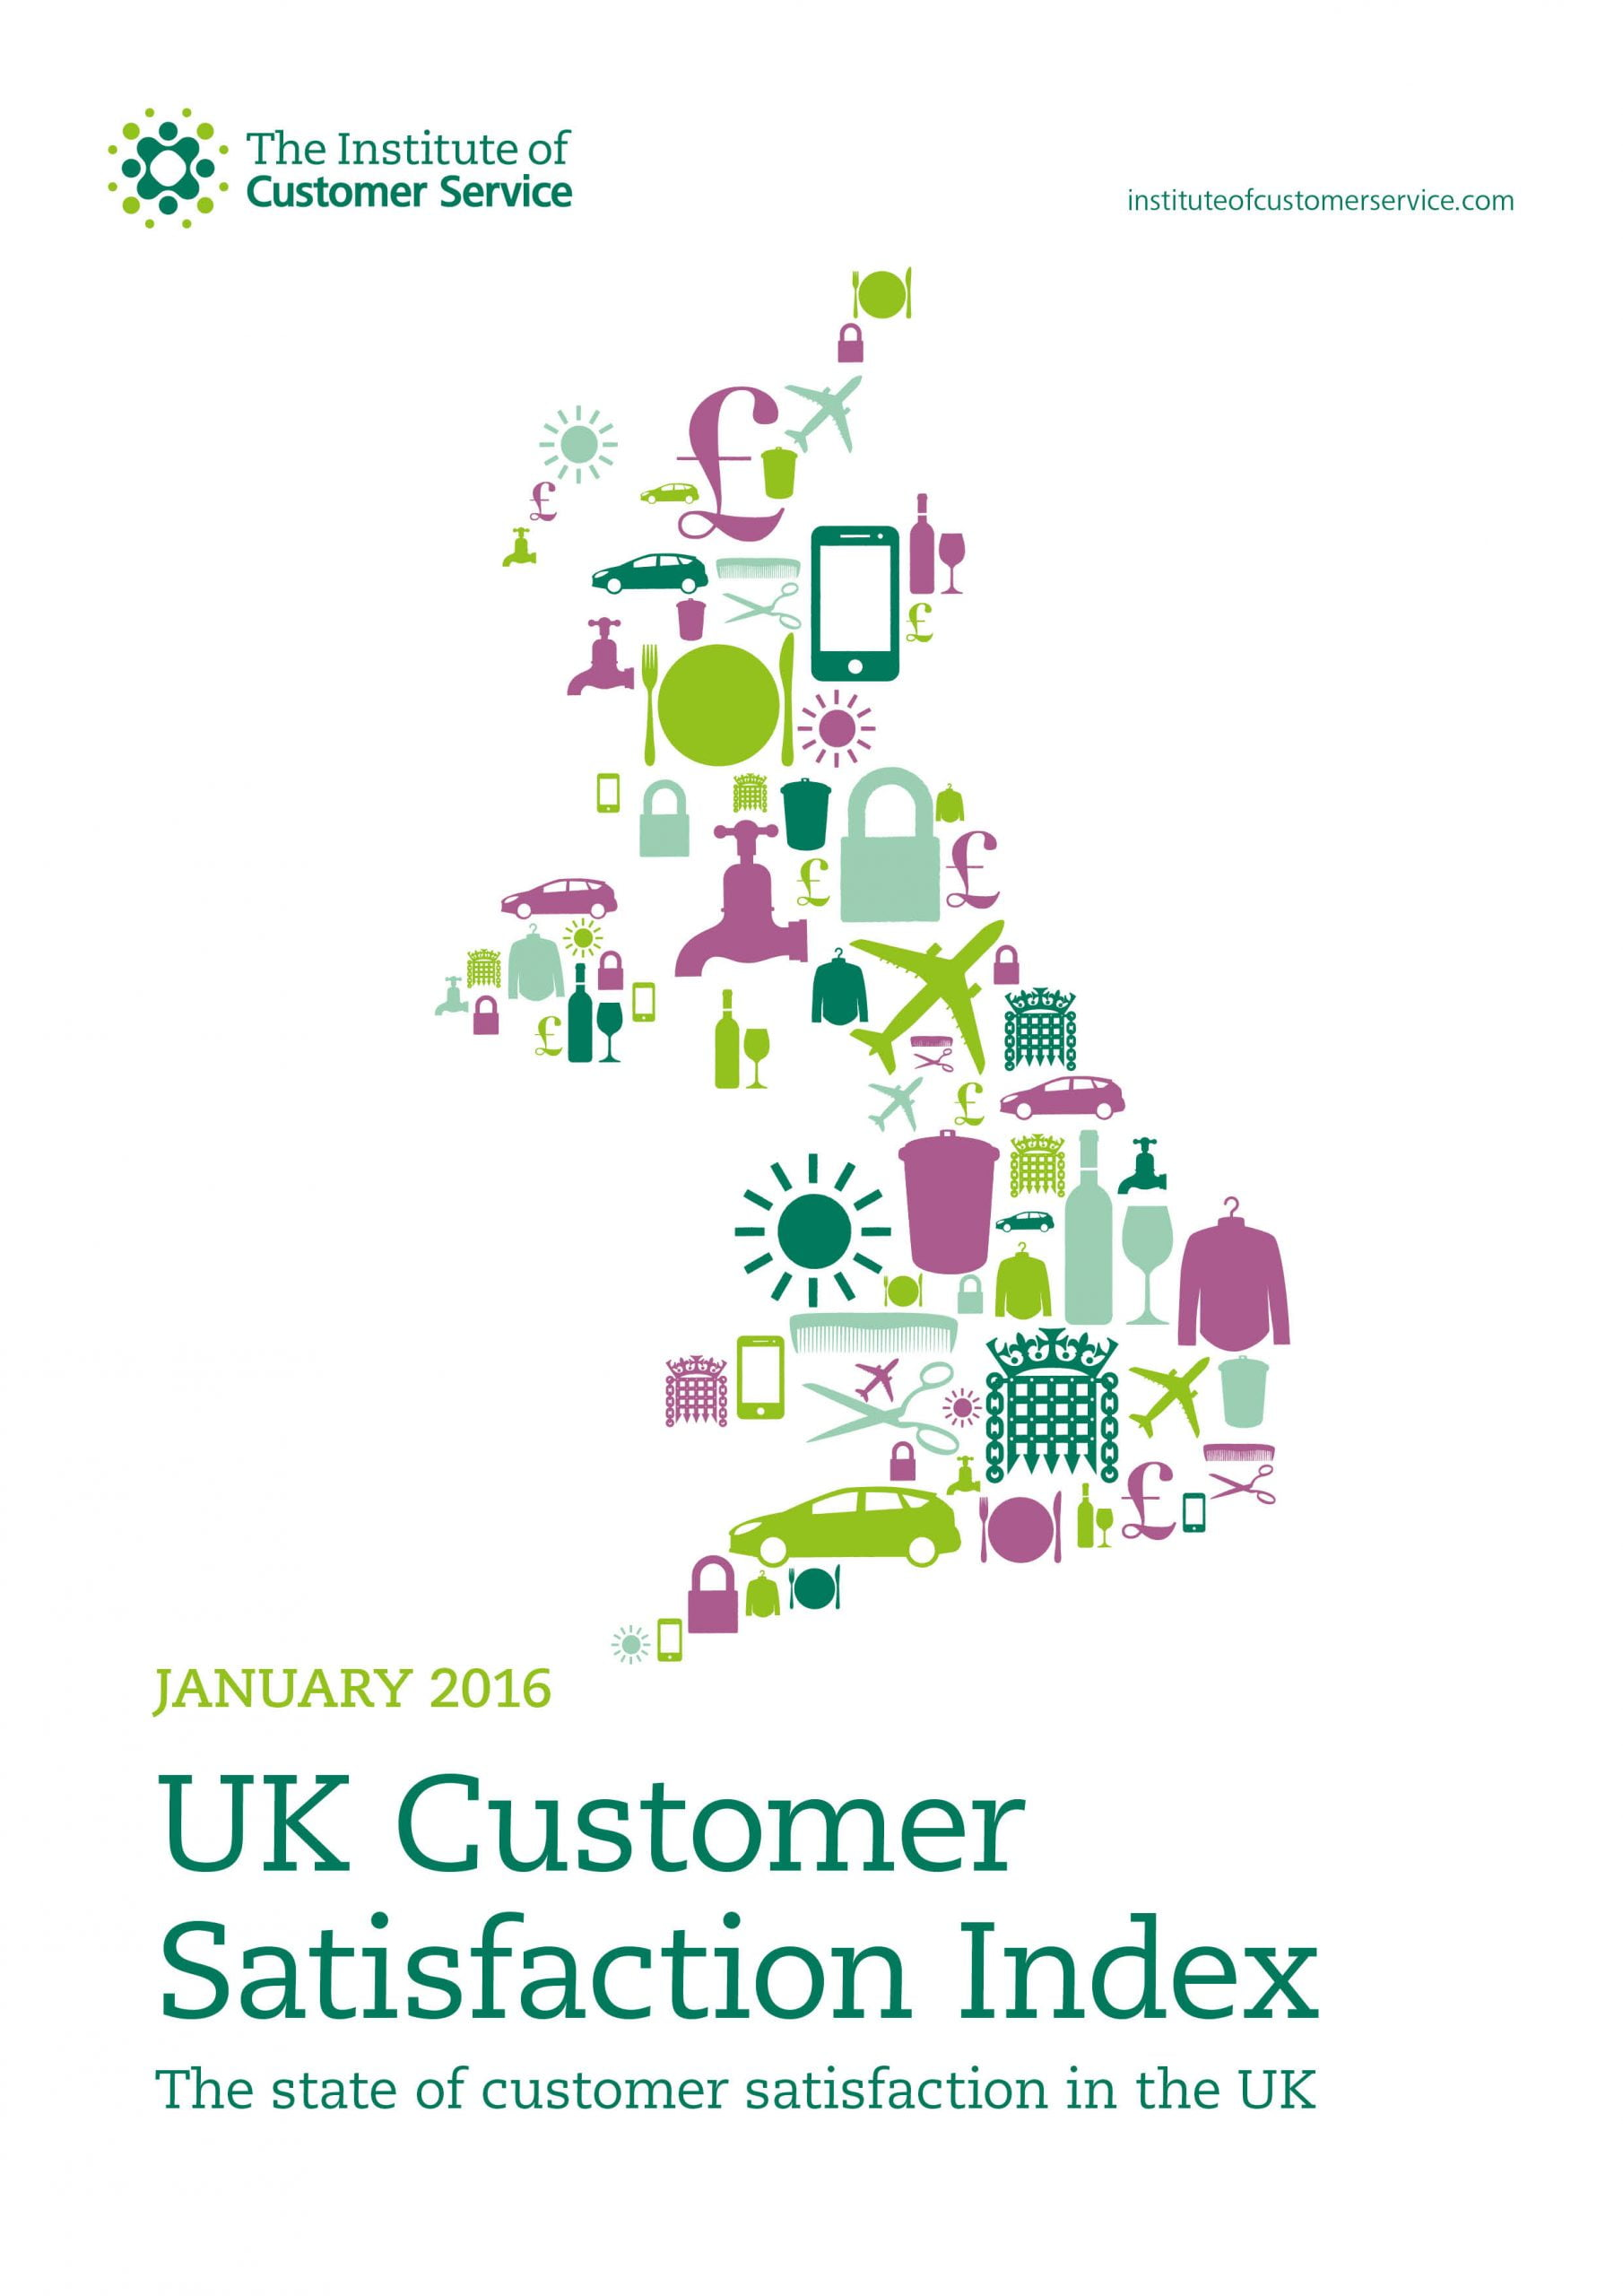 UKCSI: The State Of Customer Satisfaction In The UK – January 2016